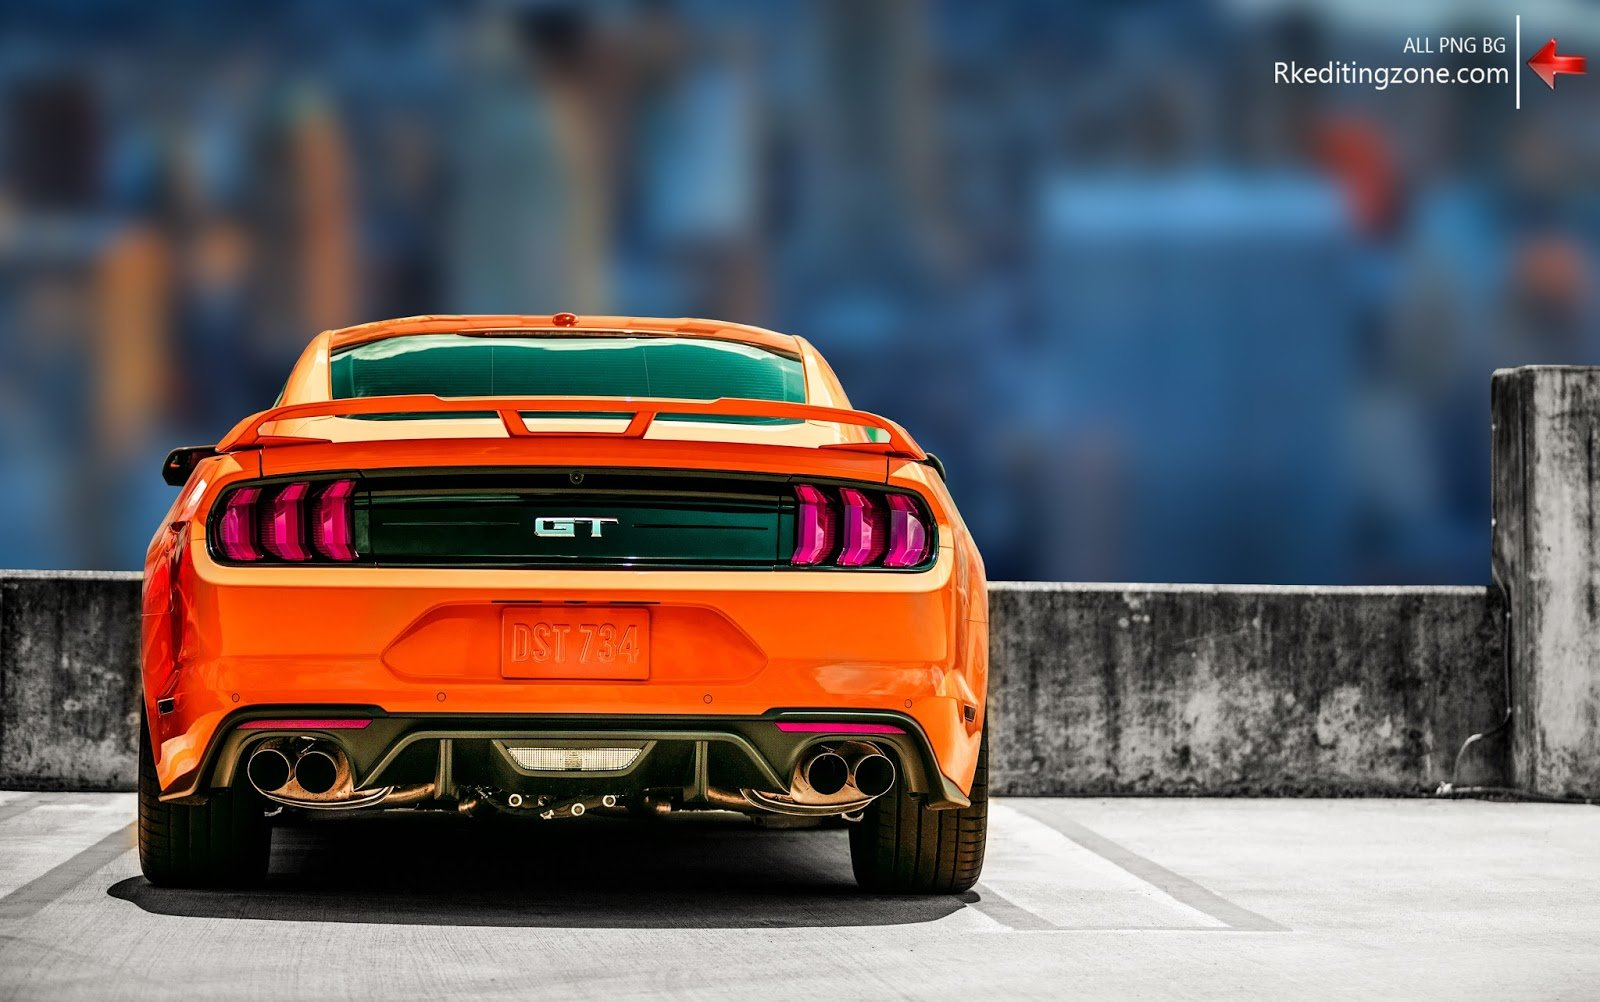 Latest Cb Car Background Hd Png Amatwallpaper Org Free Download